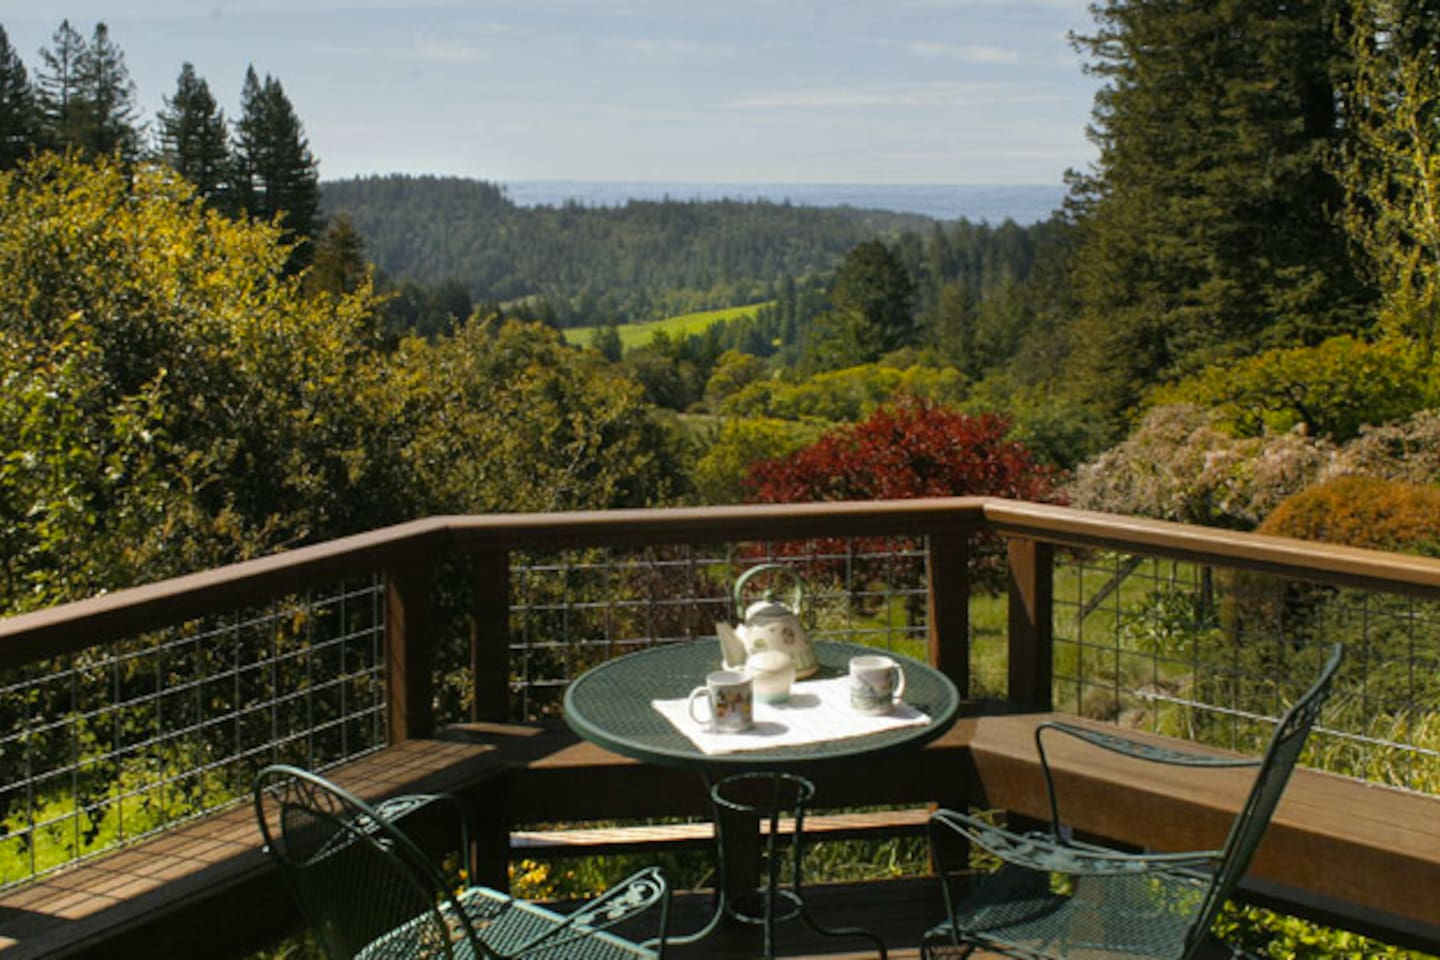 Views of vineyards, countryside and Pacific from the deck